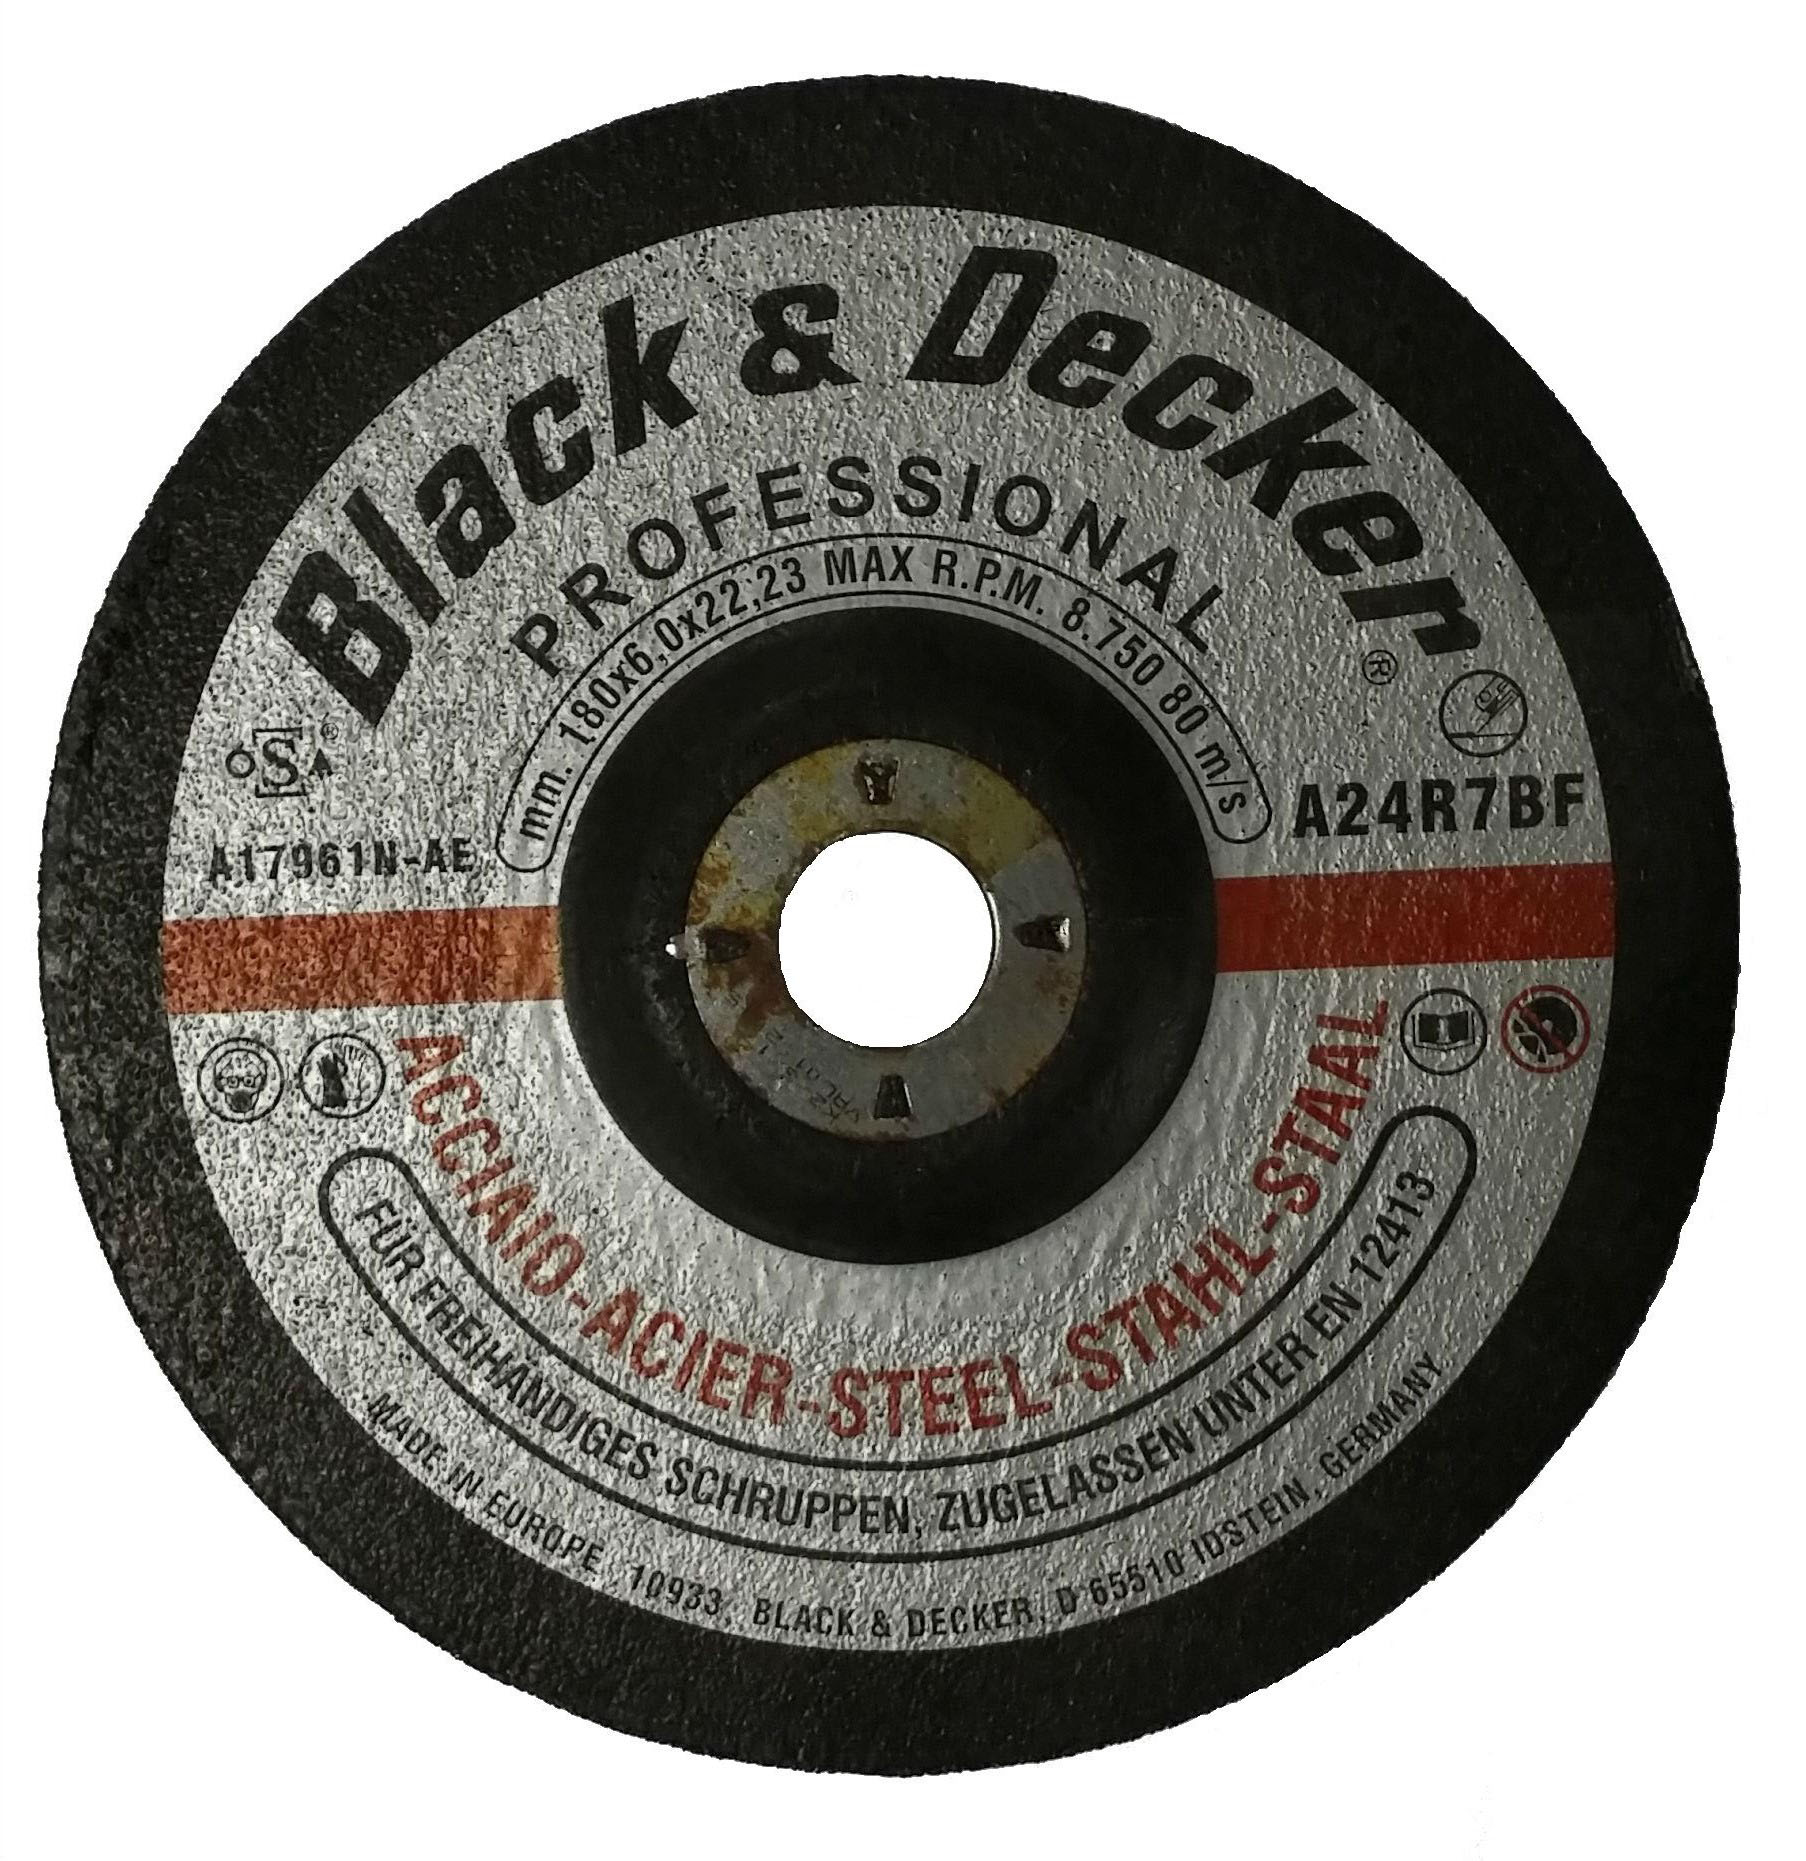 Black & Decker A17981N-AE - 9-inch Metal Grinding Disc